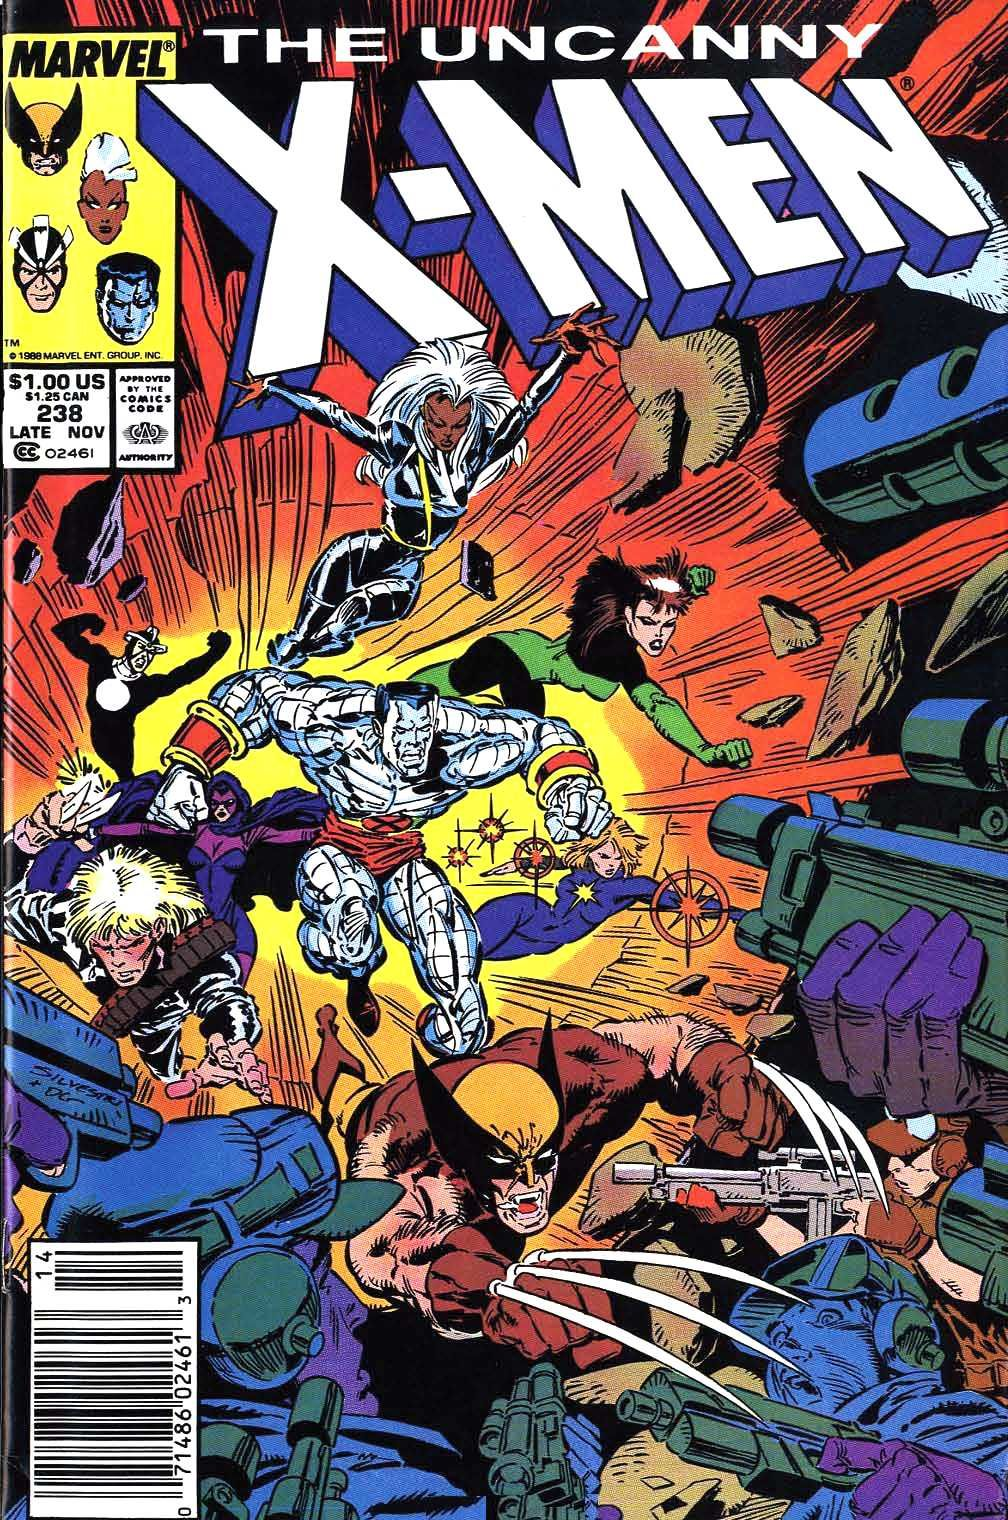 Cover of Uncanny X-Men #238